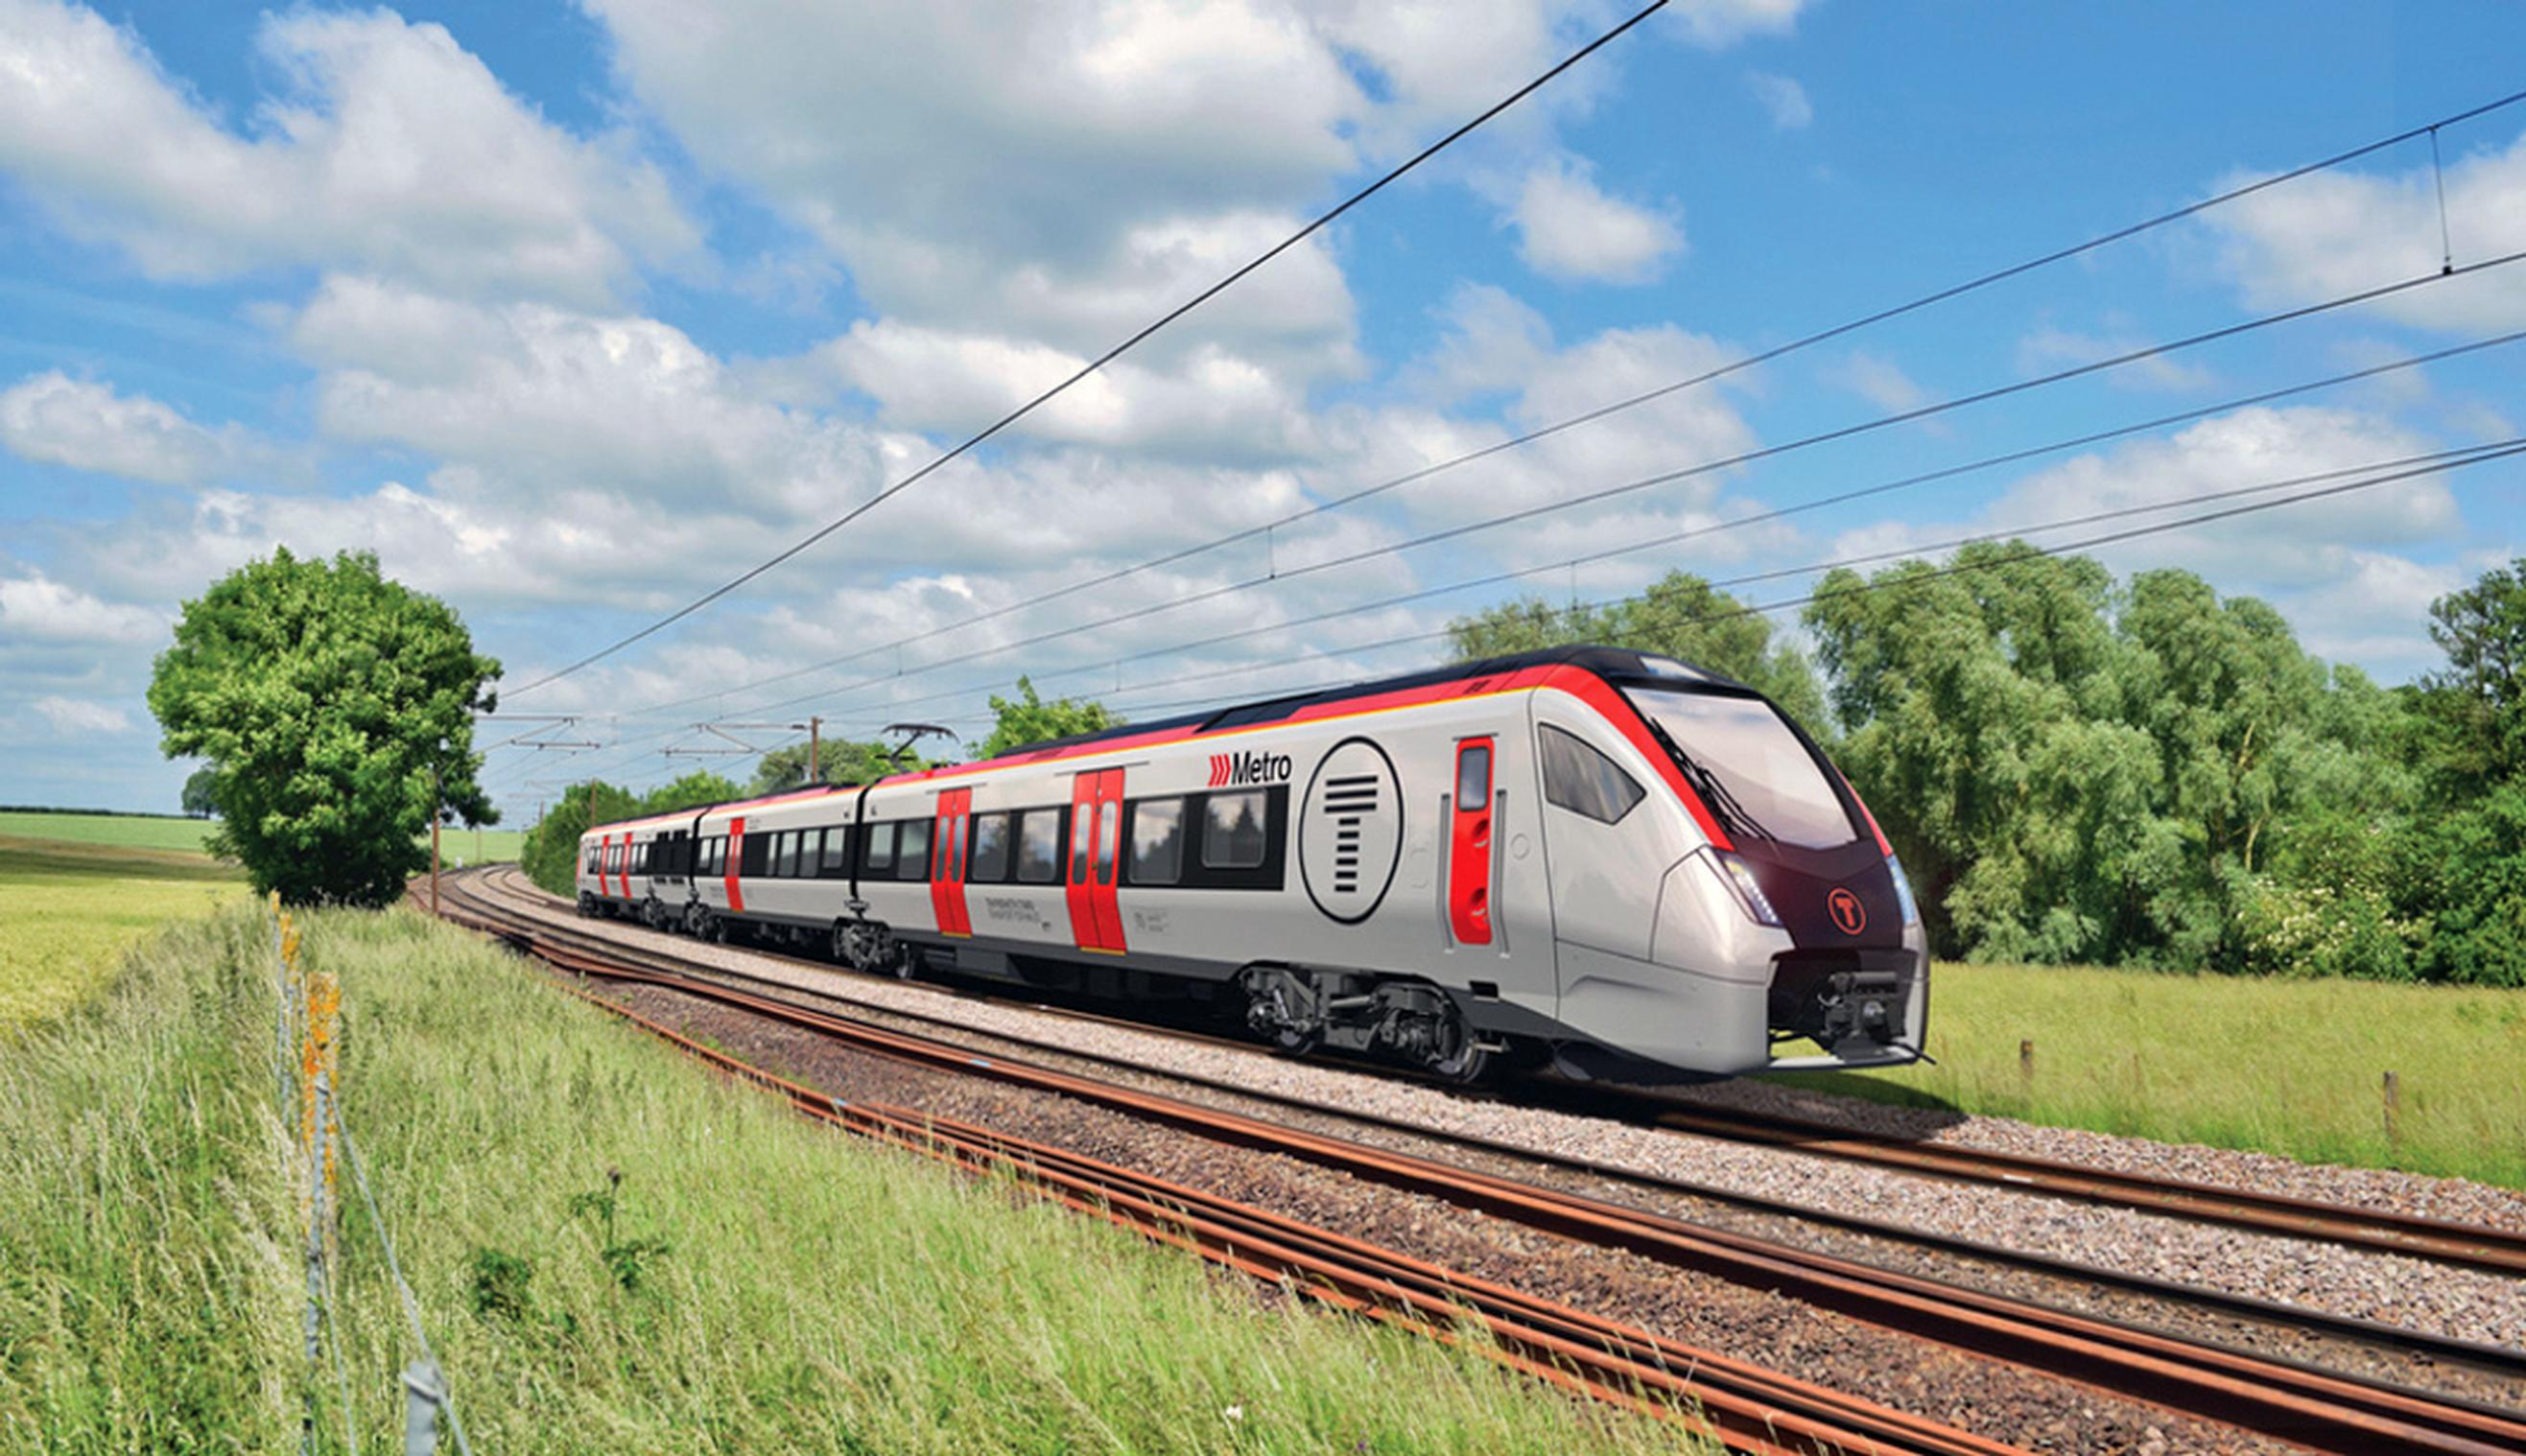 More new trains may be ordered